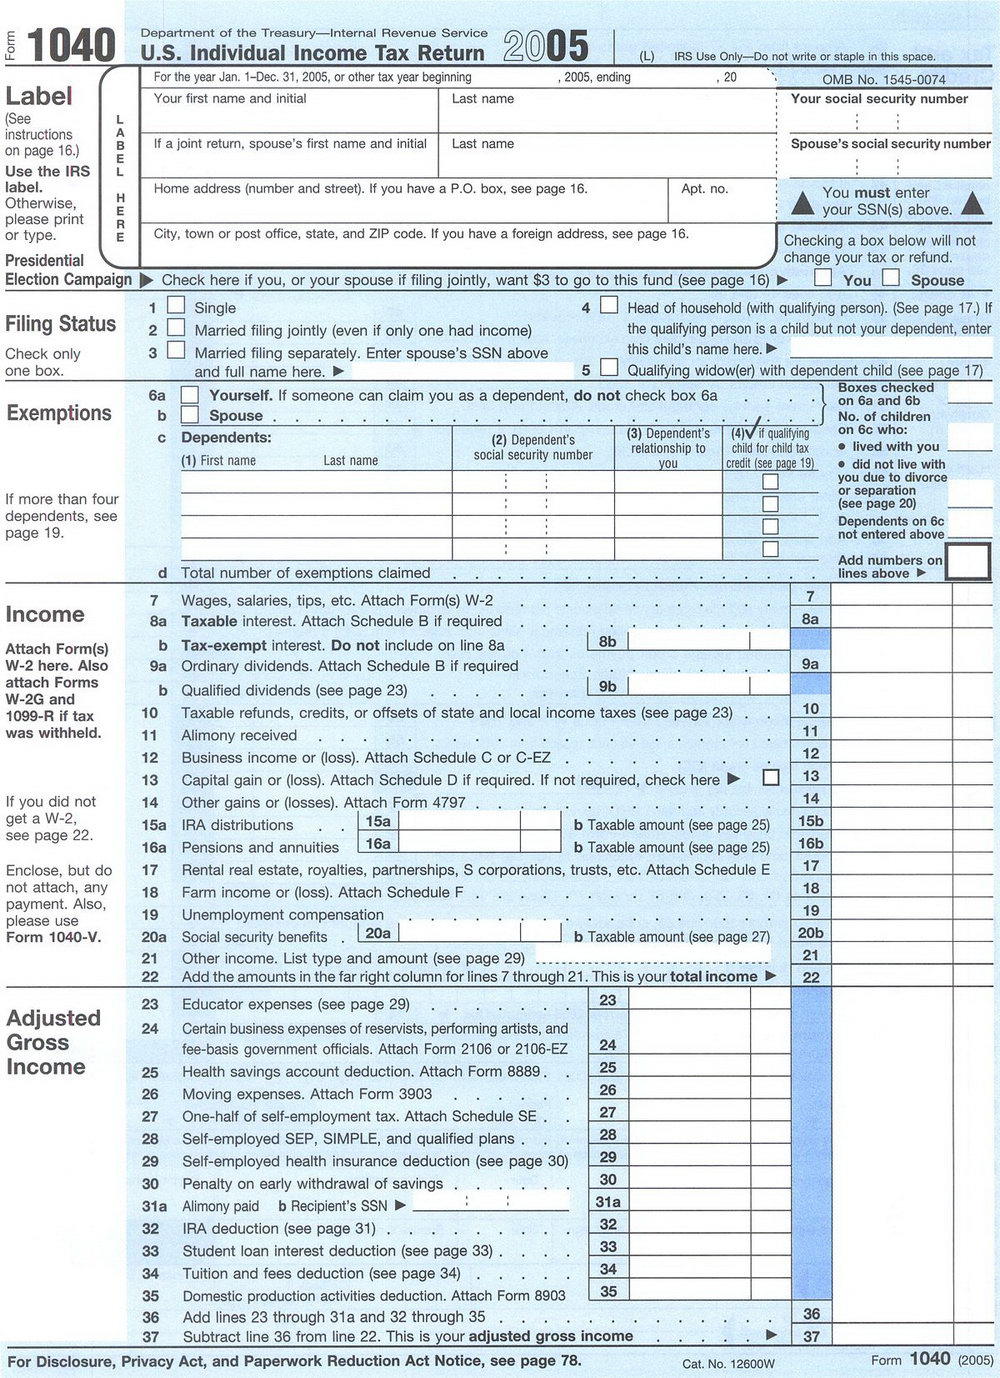 Irs Forms 1040 Schedule A